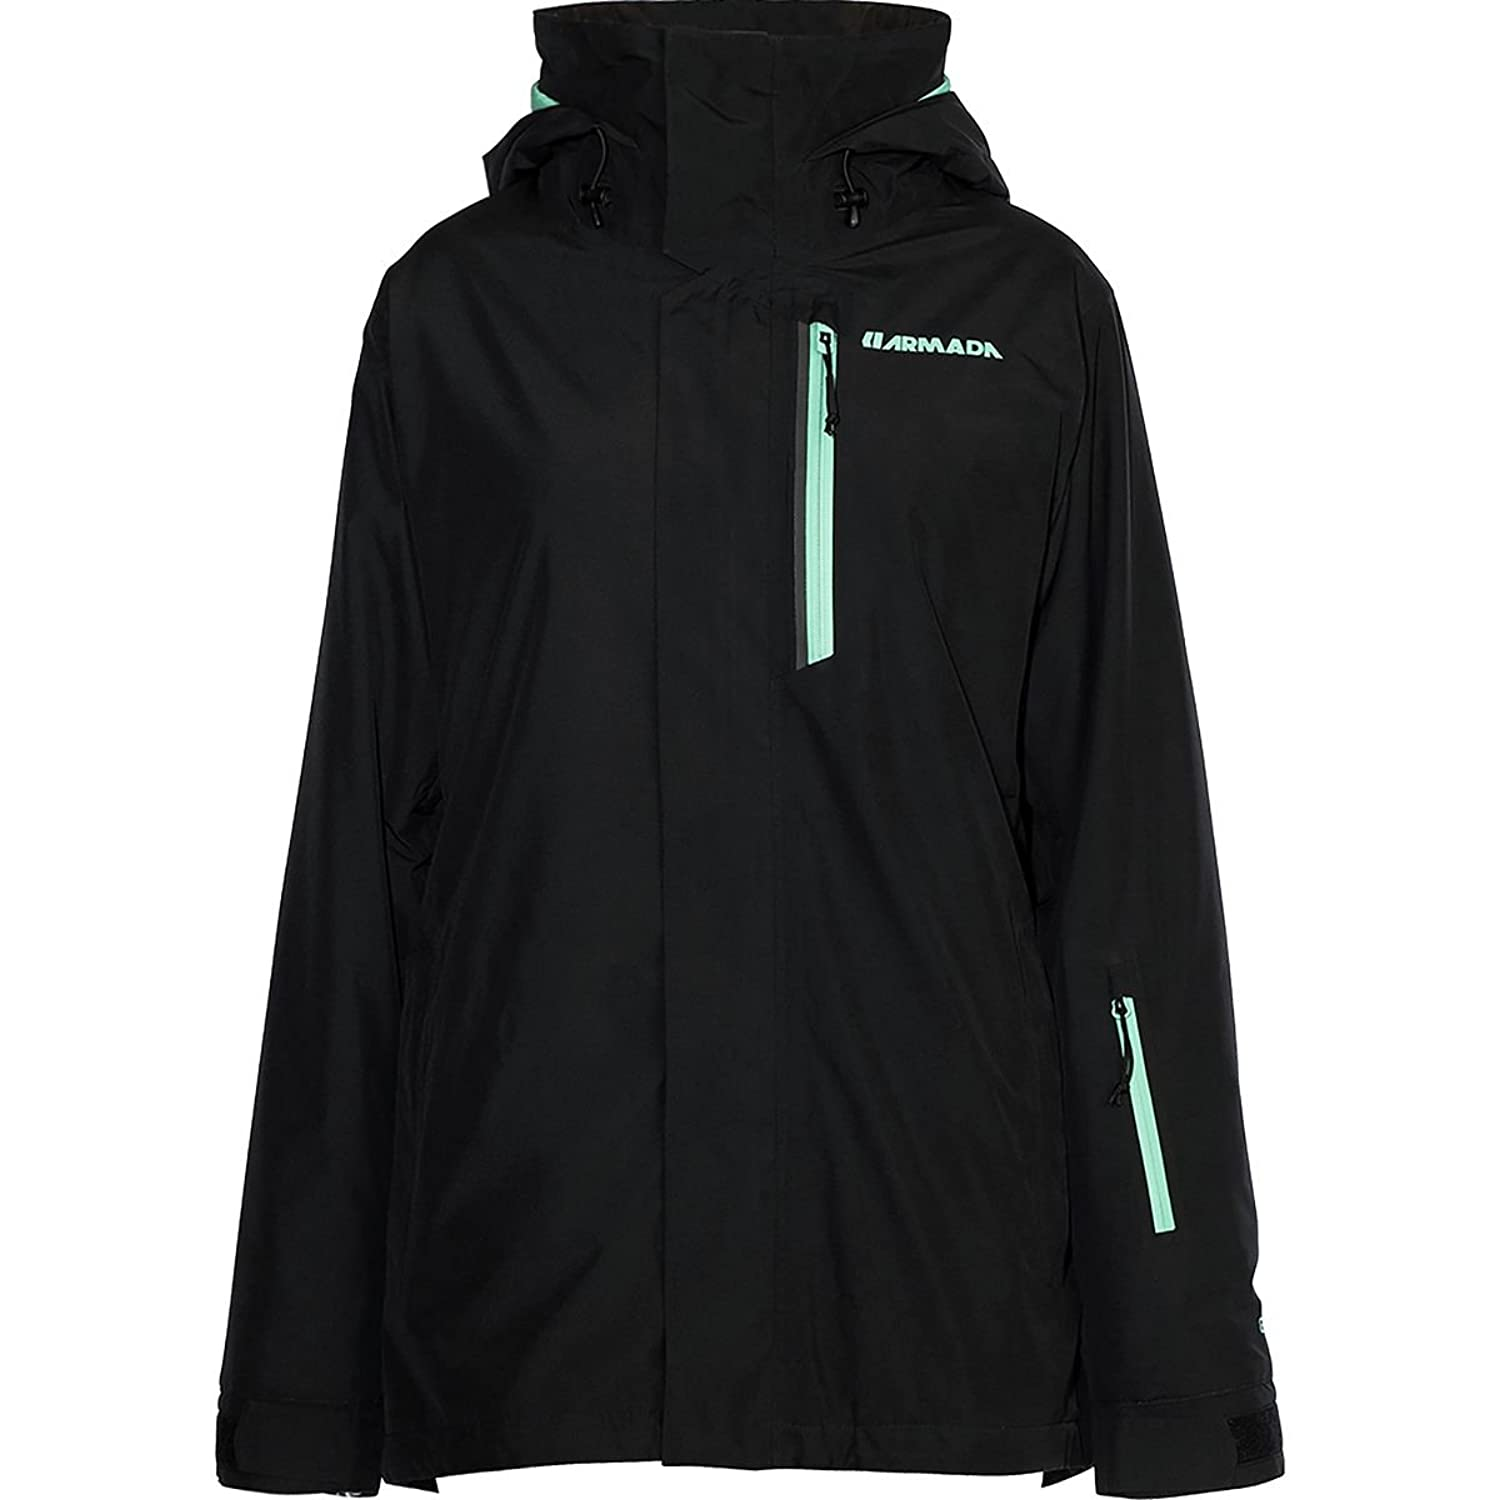 Armada OUTDOOR_RECREATION_PRODUCT レディース B076MJPDYV Small